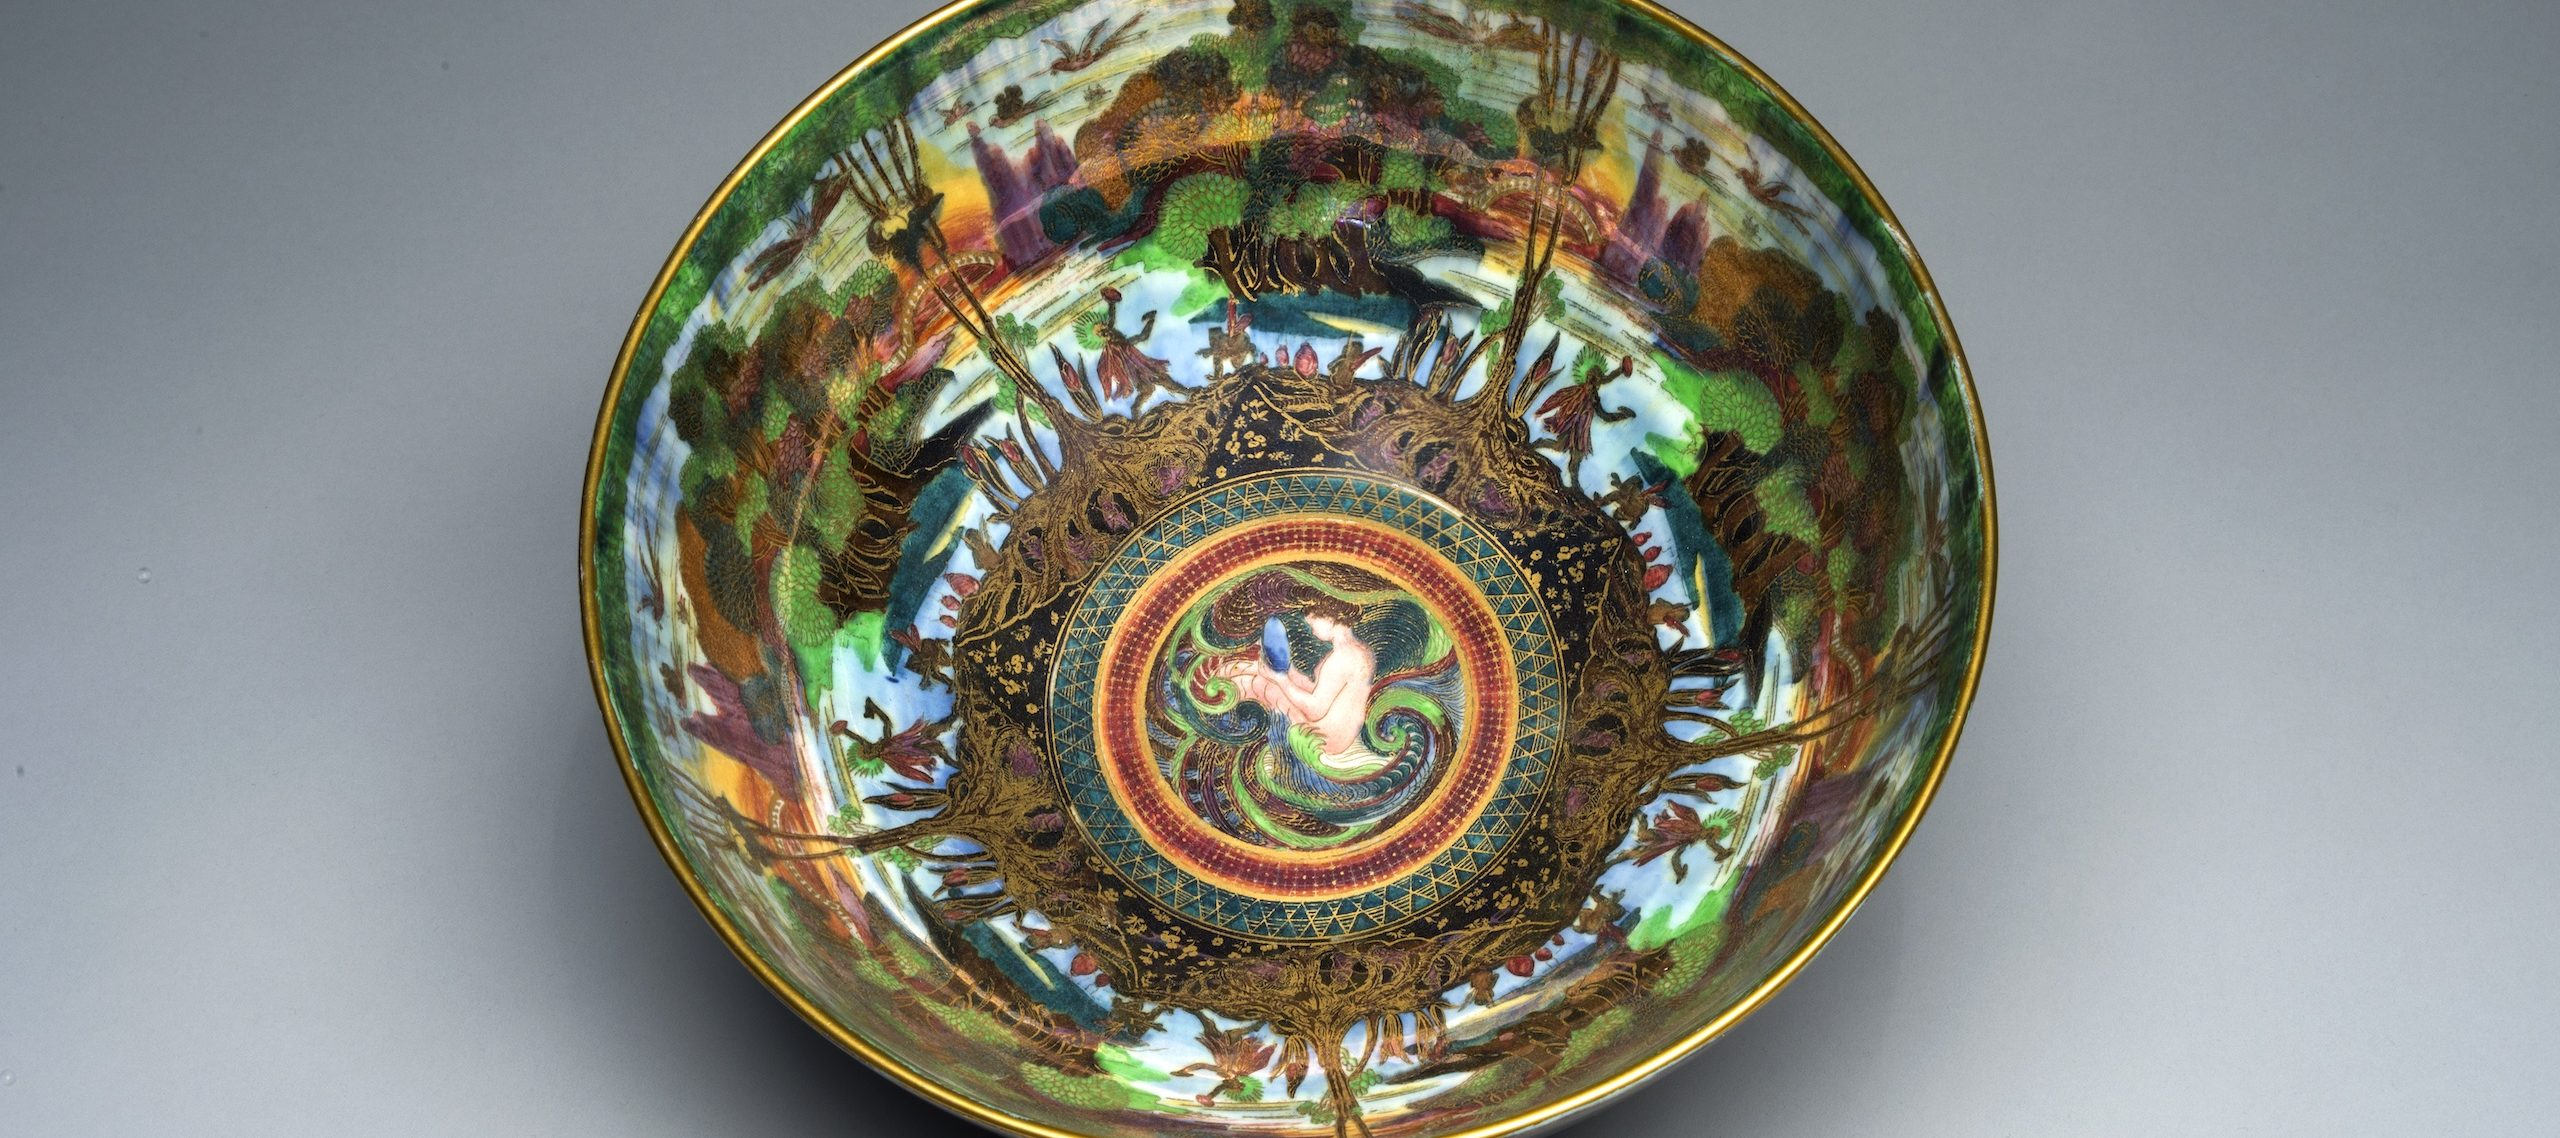 Interior view of a colorful, iridescent lusterware bowl featuring gold cloisonne and an ornamental Art Nouveau design. At the center, a light-skinned mermaid bathes in the ocean. Radiating outward, and repeated five times, is a lush agrarian scene.